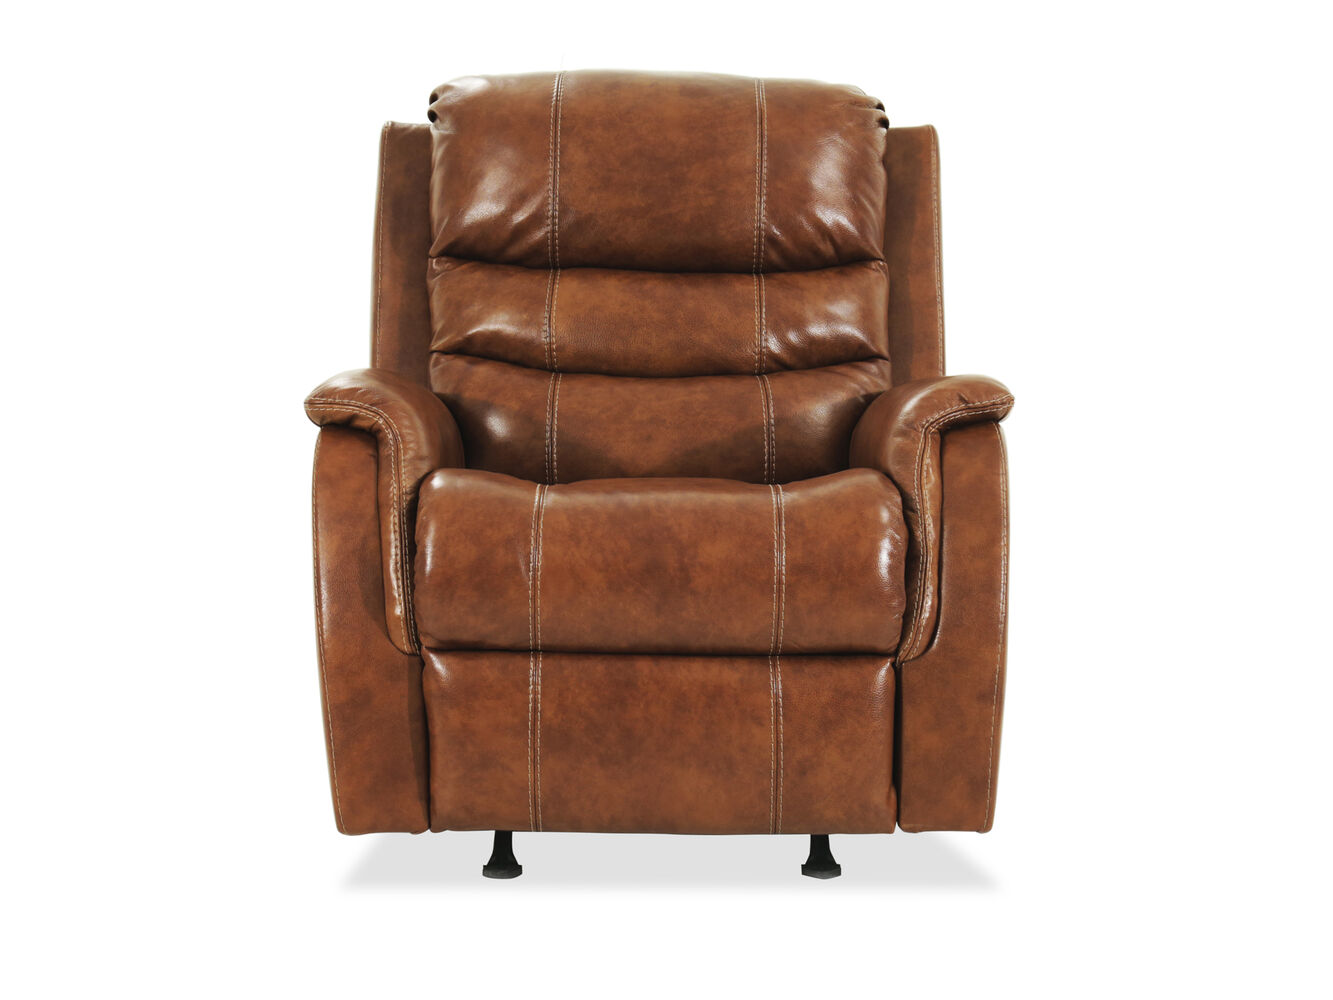 Ashley Metcalf Nutmeg Power Recliner With Adjustable Headrest Mathis Brothers Furniture